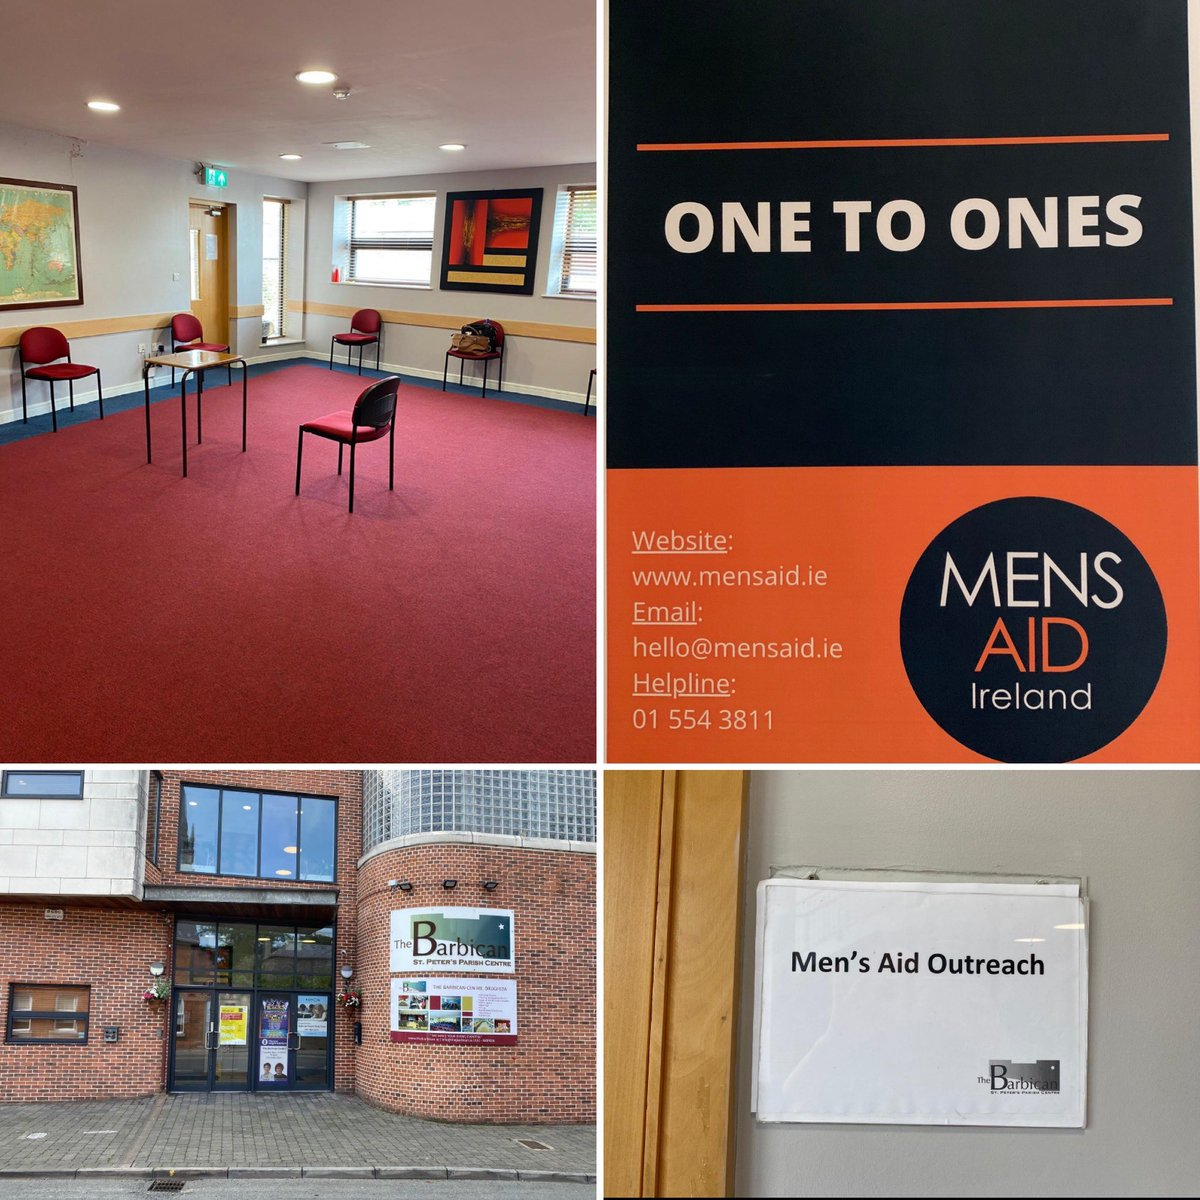 "Men's Aid Ireland on Twitter: ""Delighted to announce 2 of our outreach  clinics are now up and running!Our 2nd clinic,The Barbican Drogheda,runs on  the last Friday of each month.We hope to advertise"